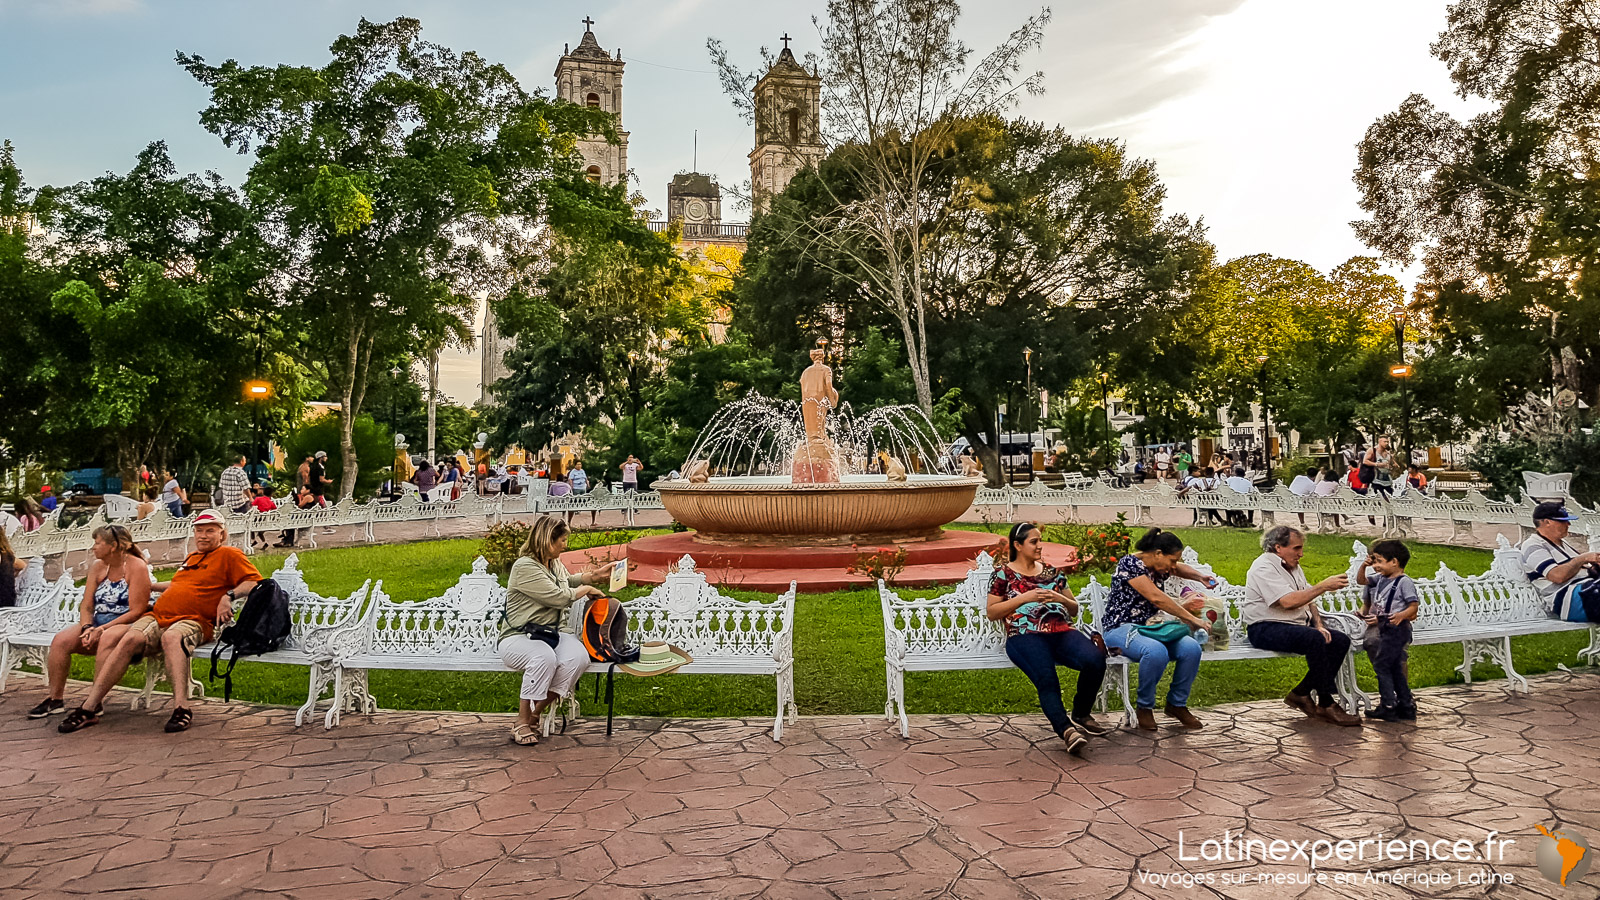 Mexique - Valladolid - Place centrale 2- Latinexperience voyages